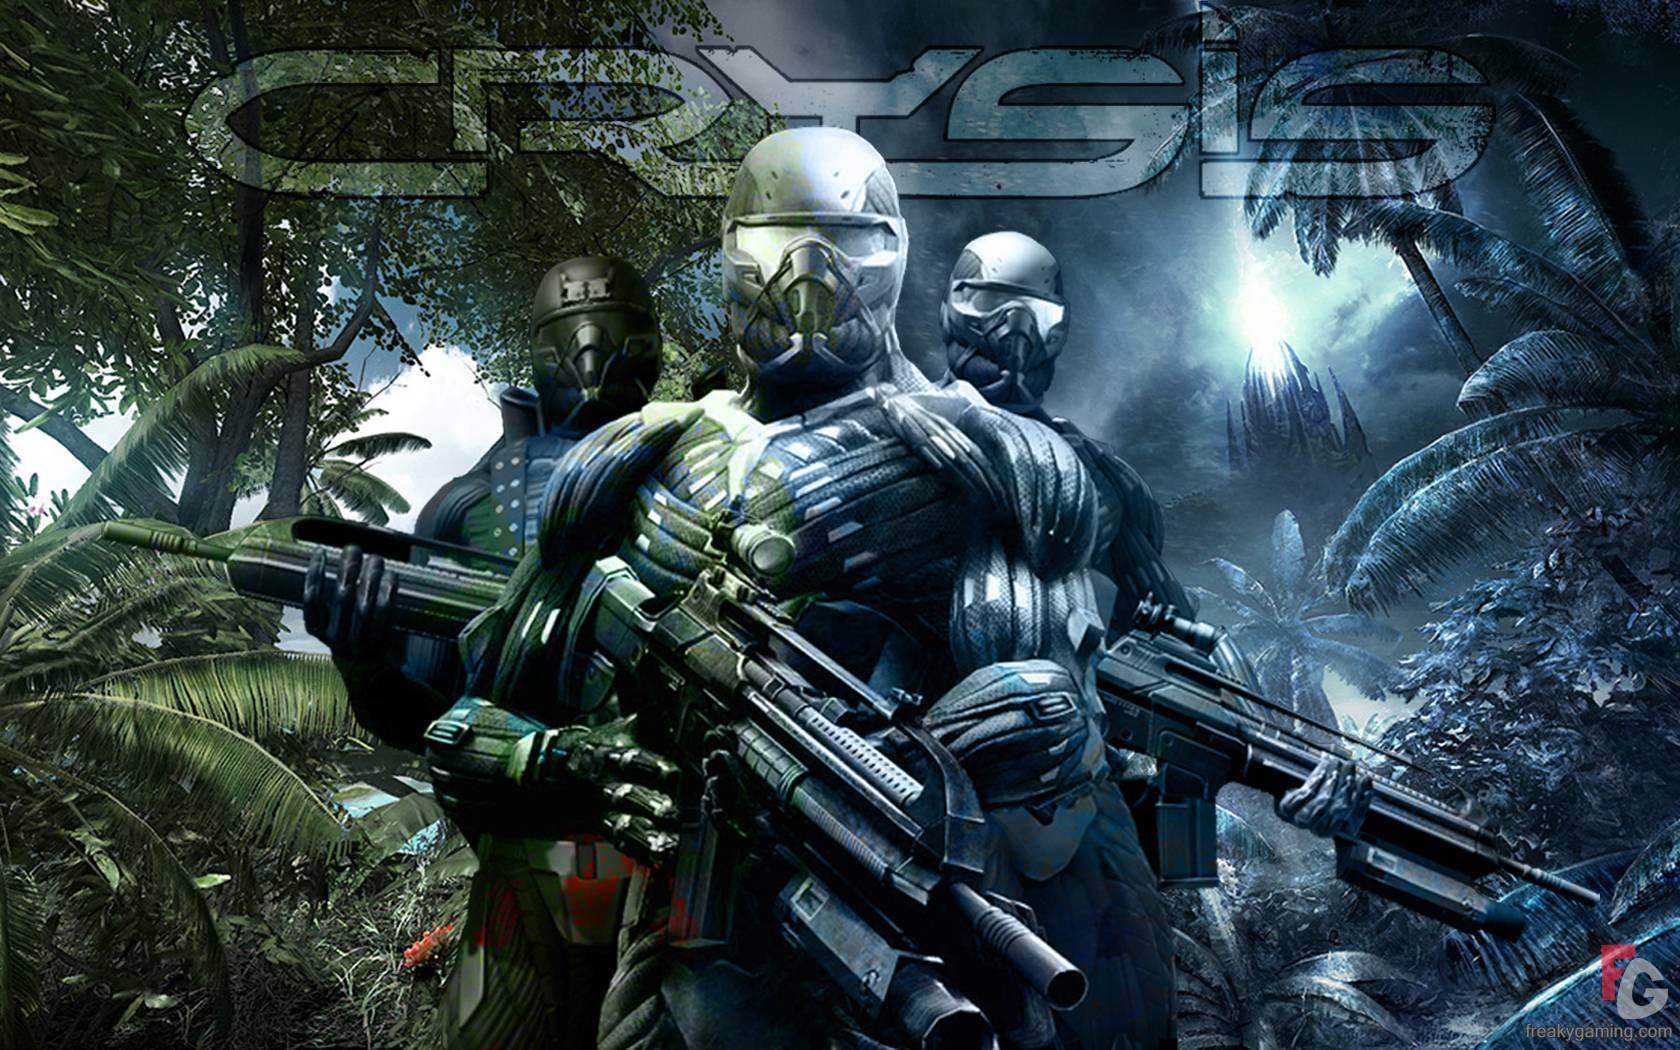 crysis 4 wallpaper hd - photo #6